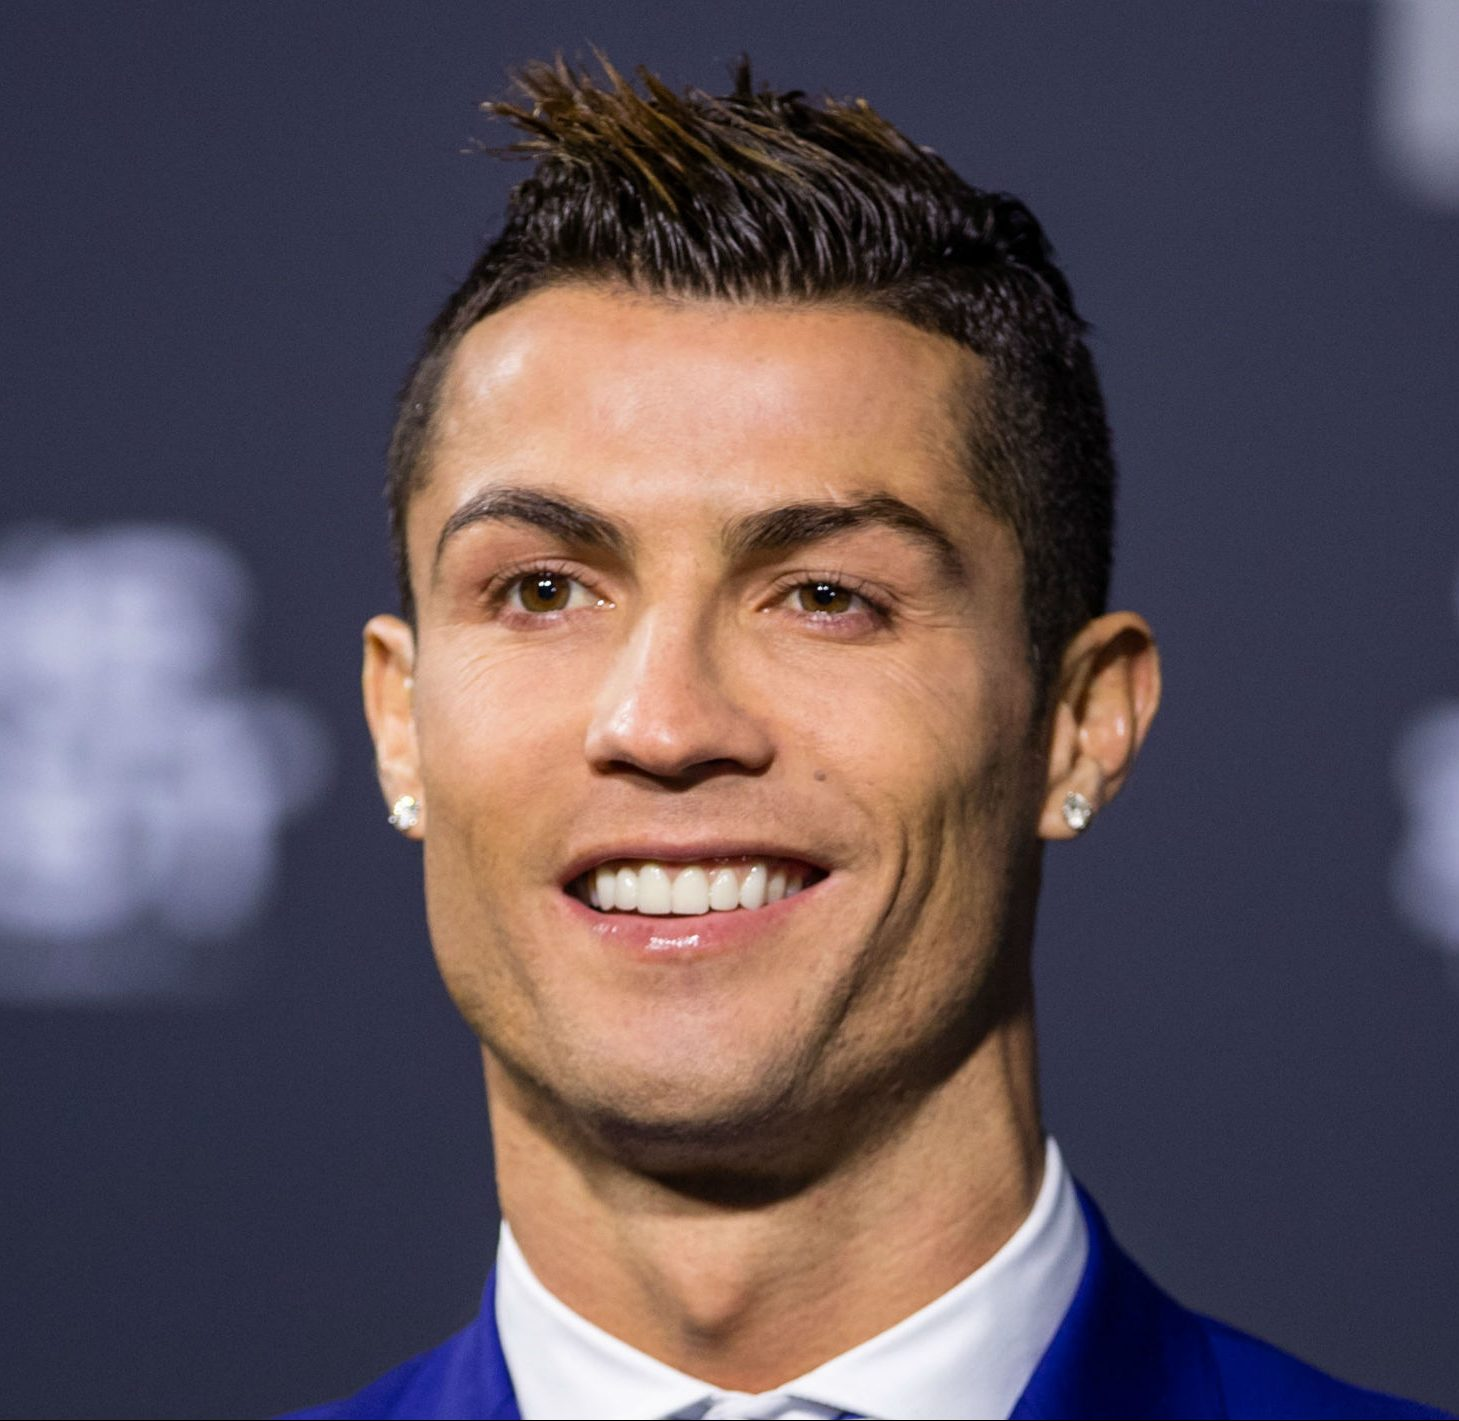 Pictures Of Ronaldo Hairstyle 2018 Rock Cafe